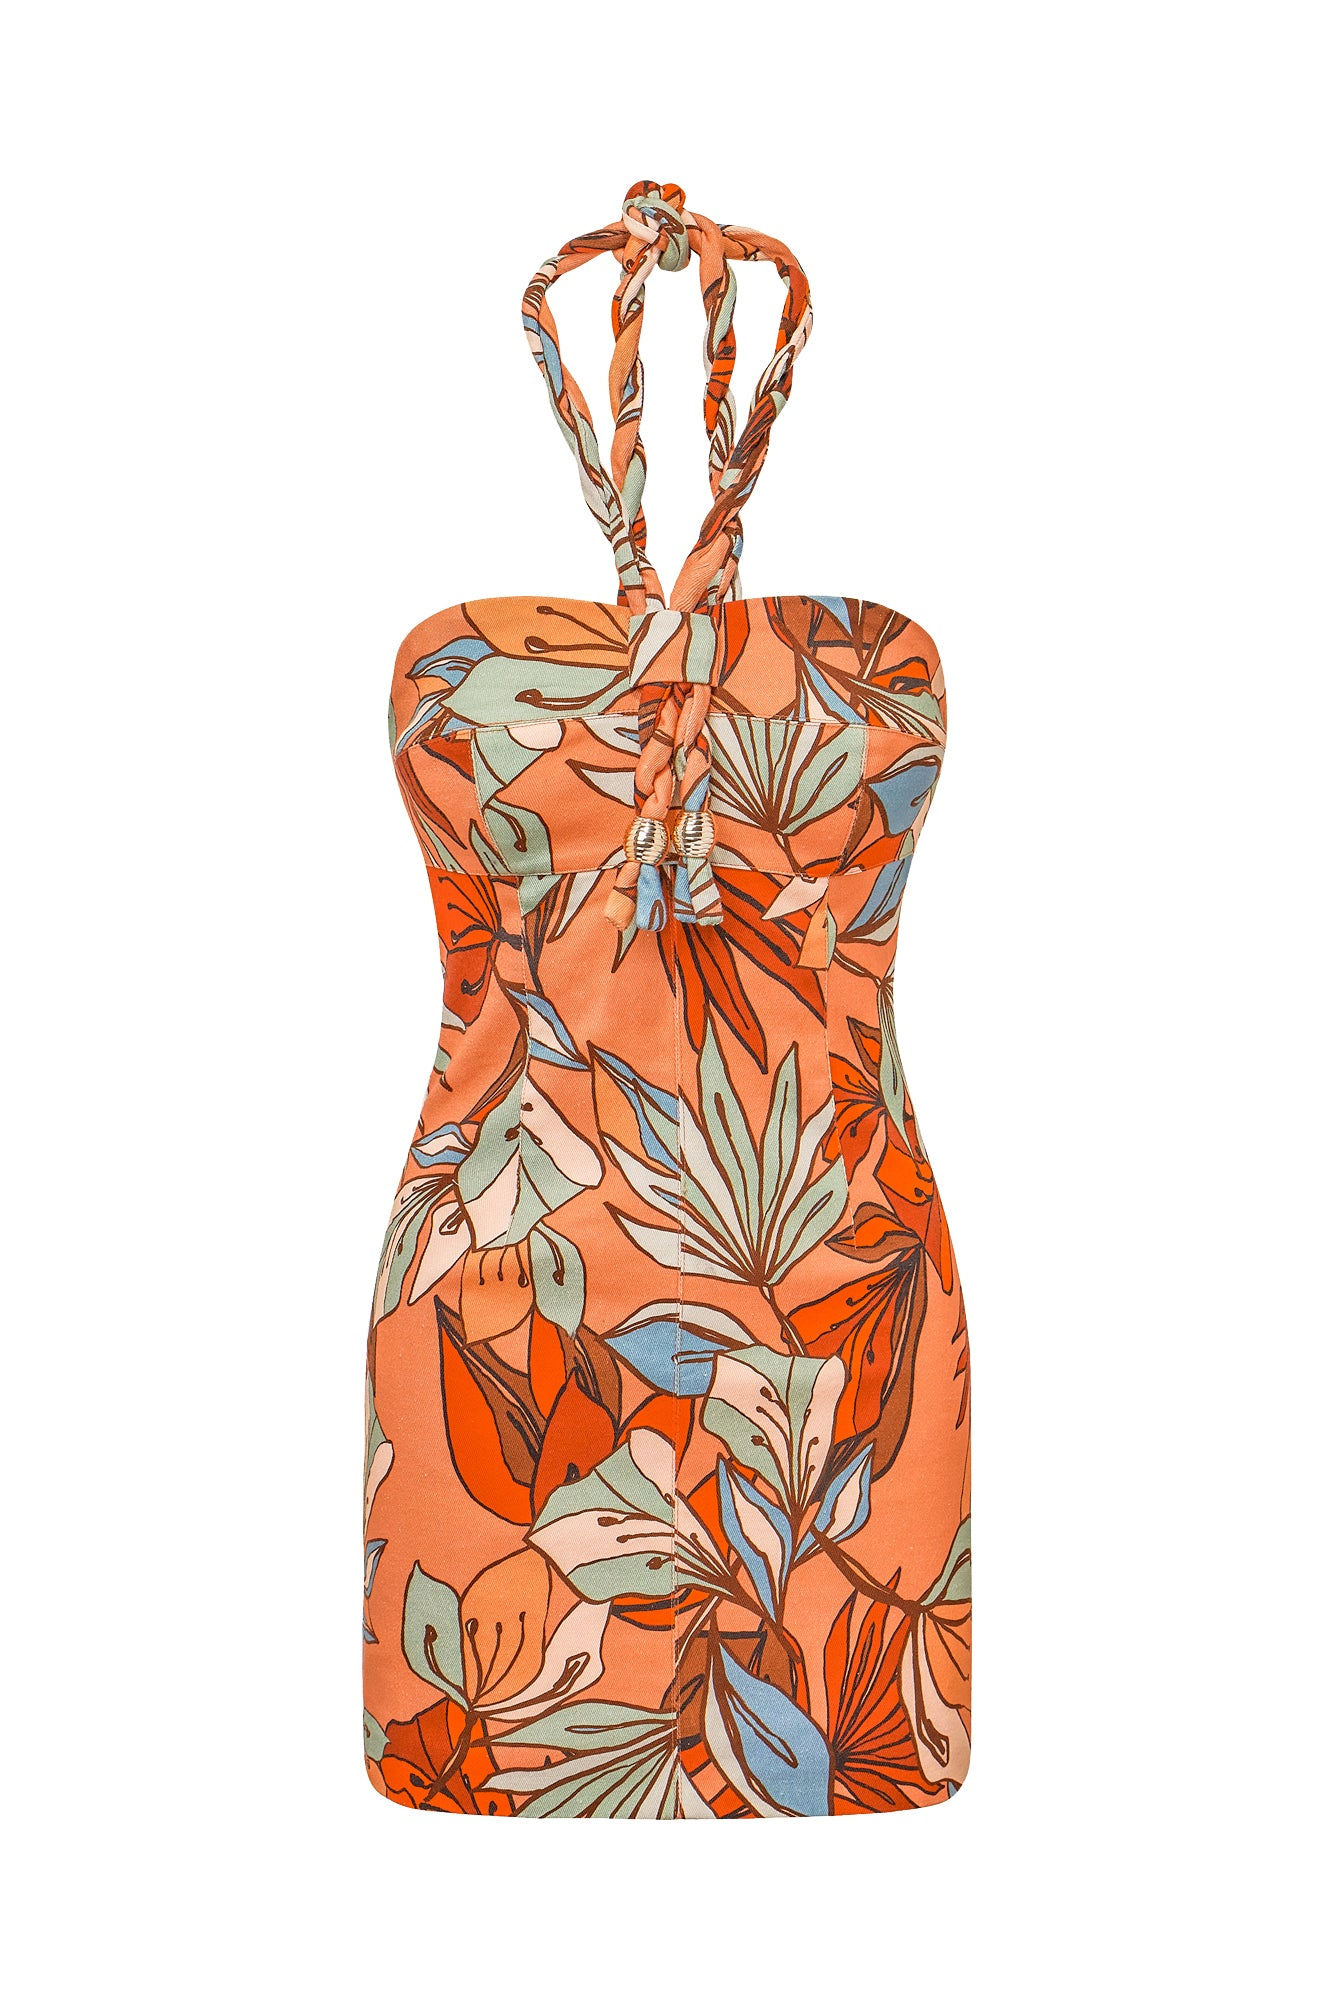 Tiffany Dress - Tarama Deco Floral